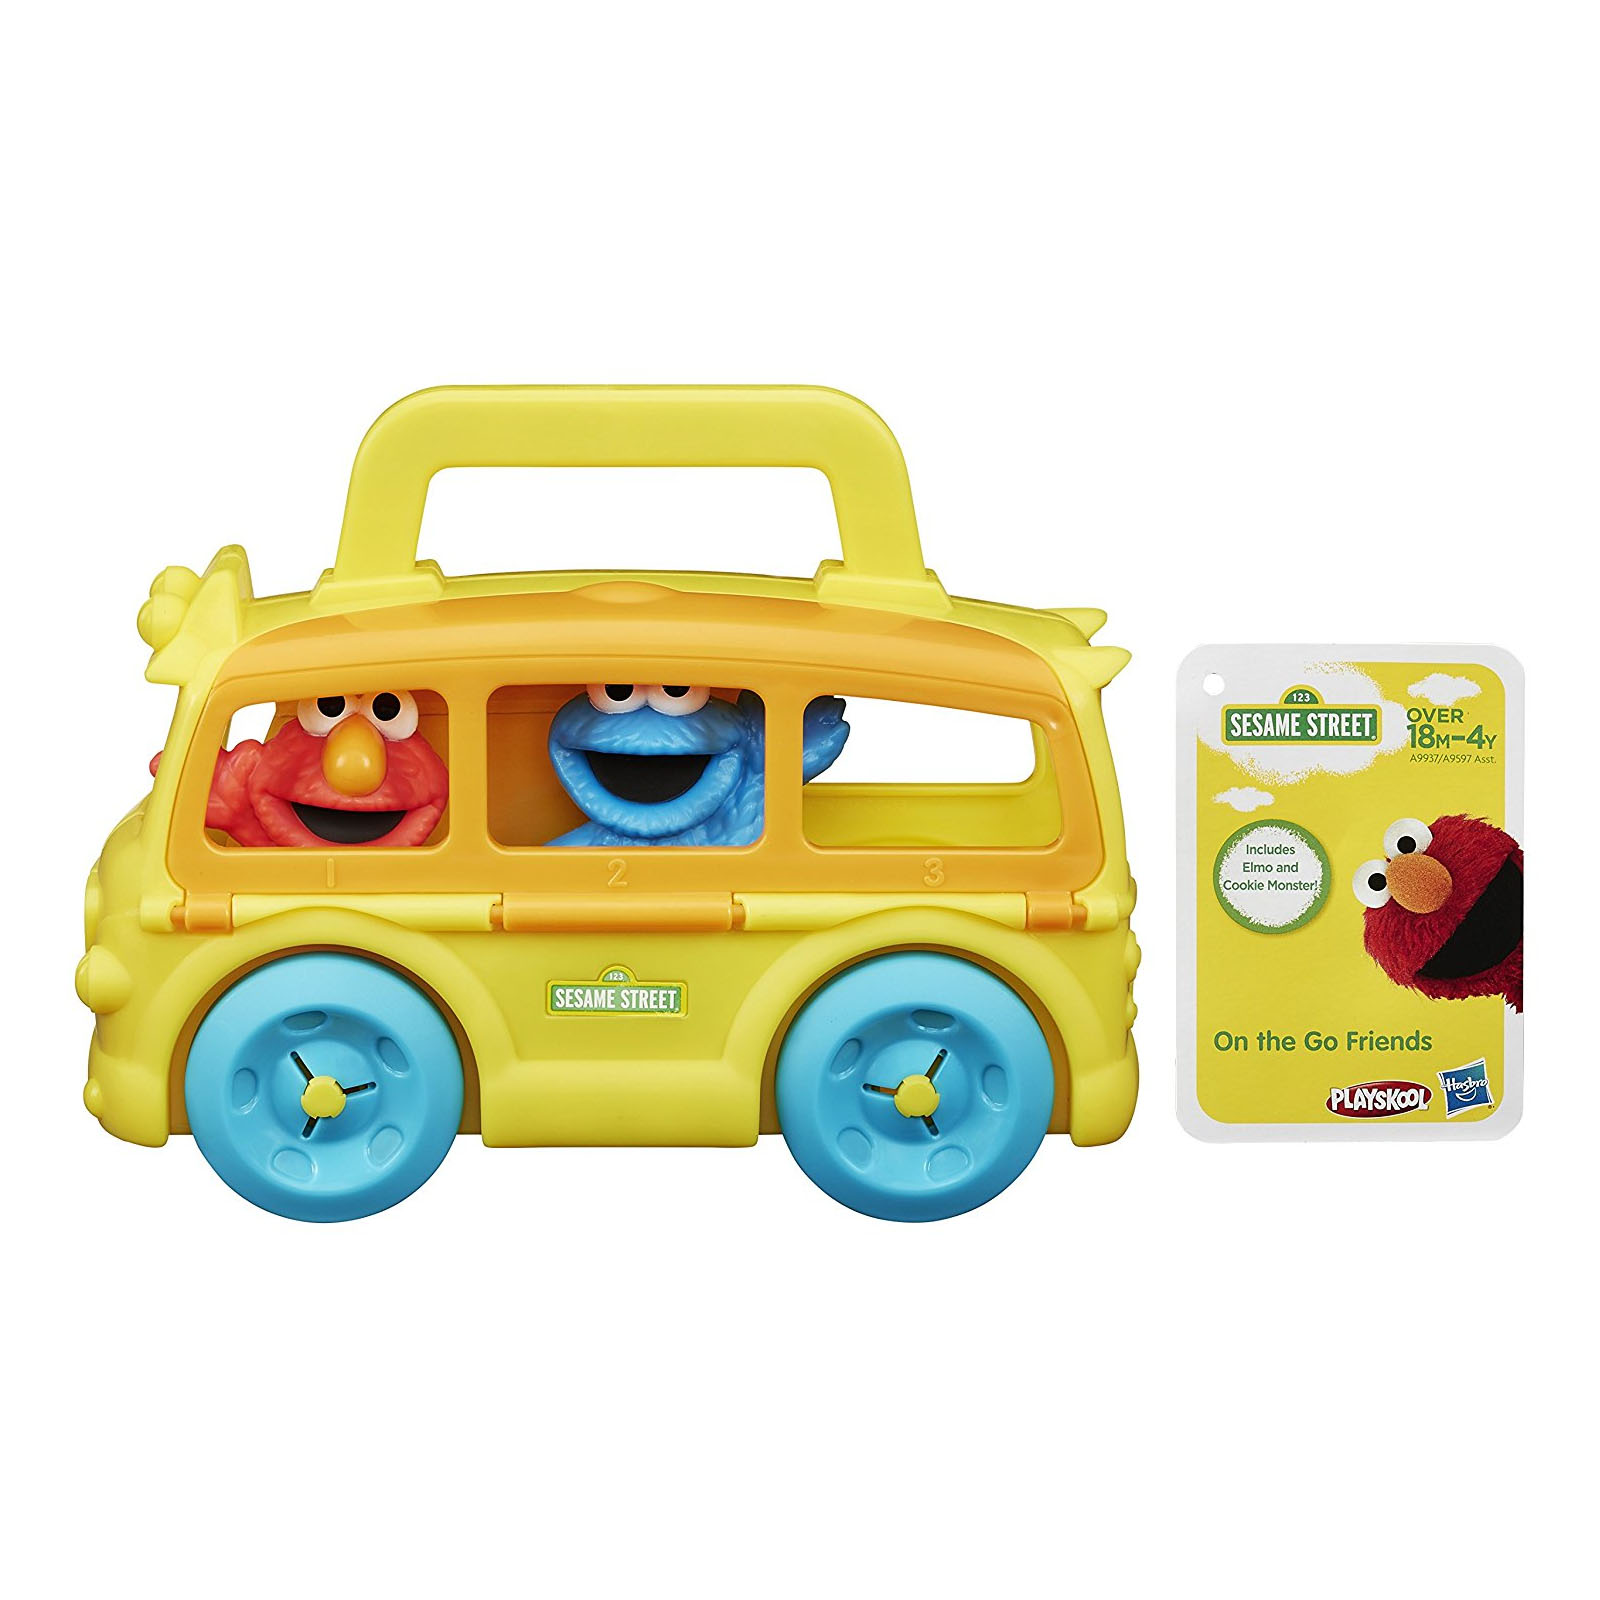 Playskool Sesame Street On the Go Bus with Elmo & Cookie Monster